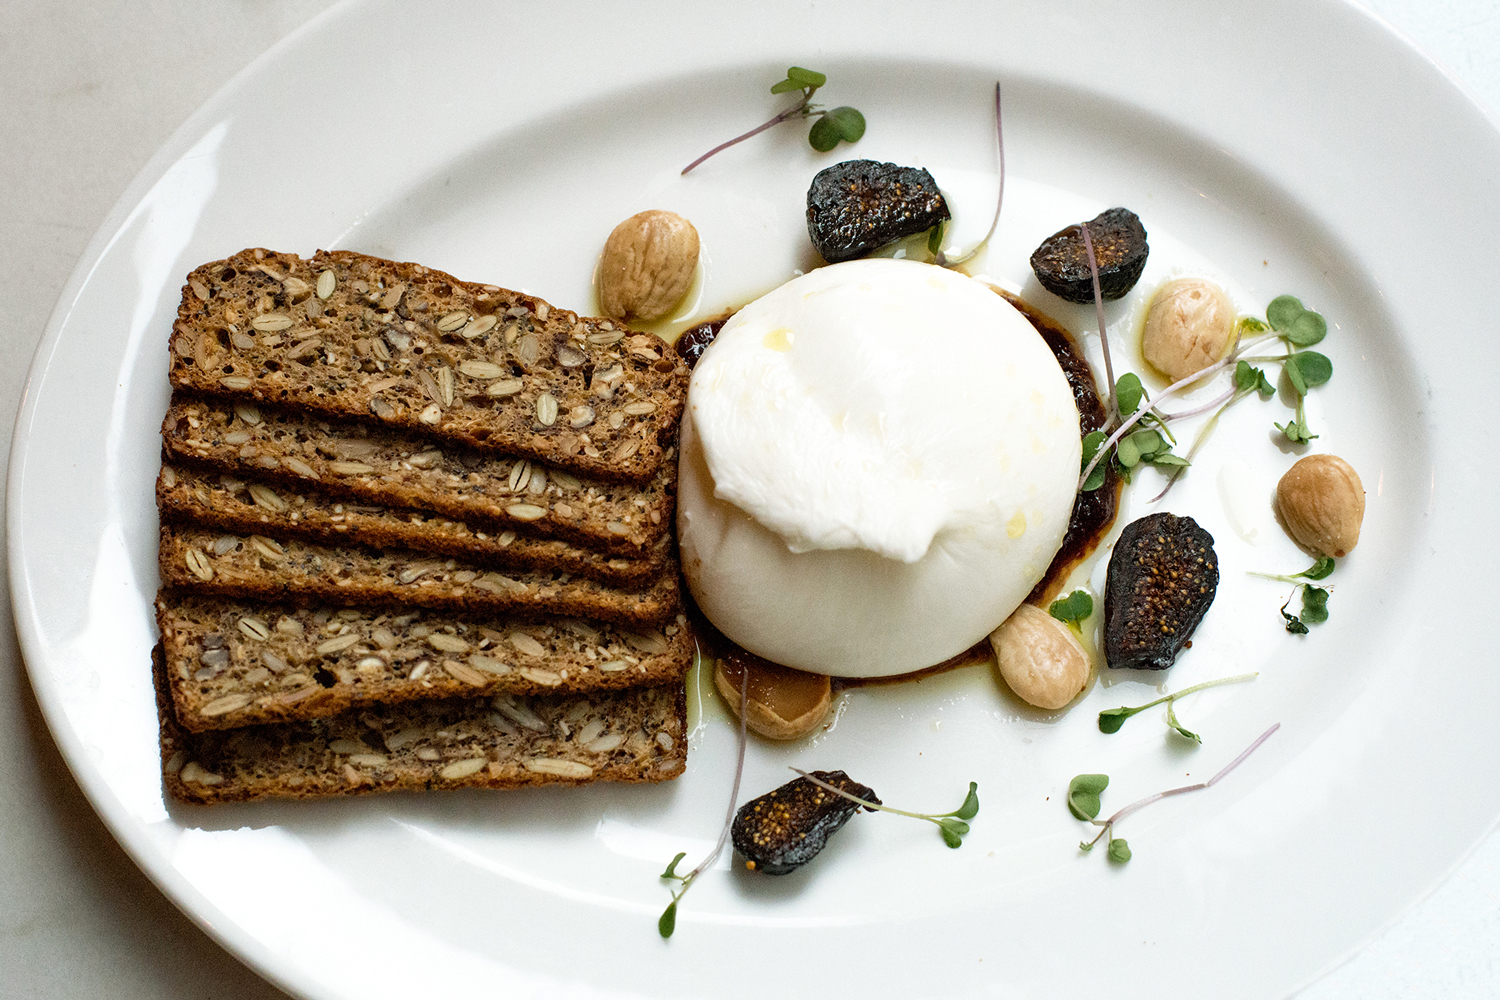 Buratta Food Photography